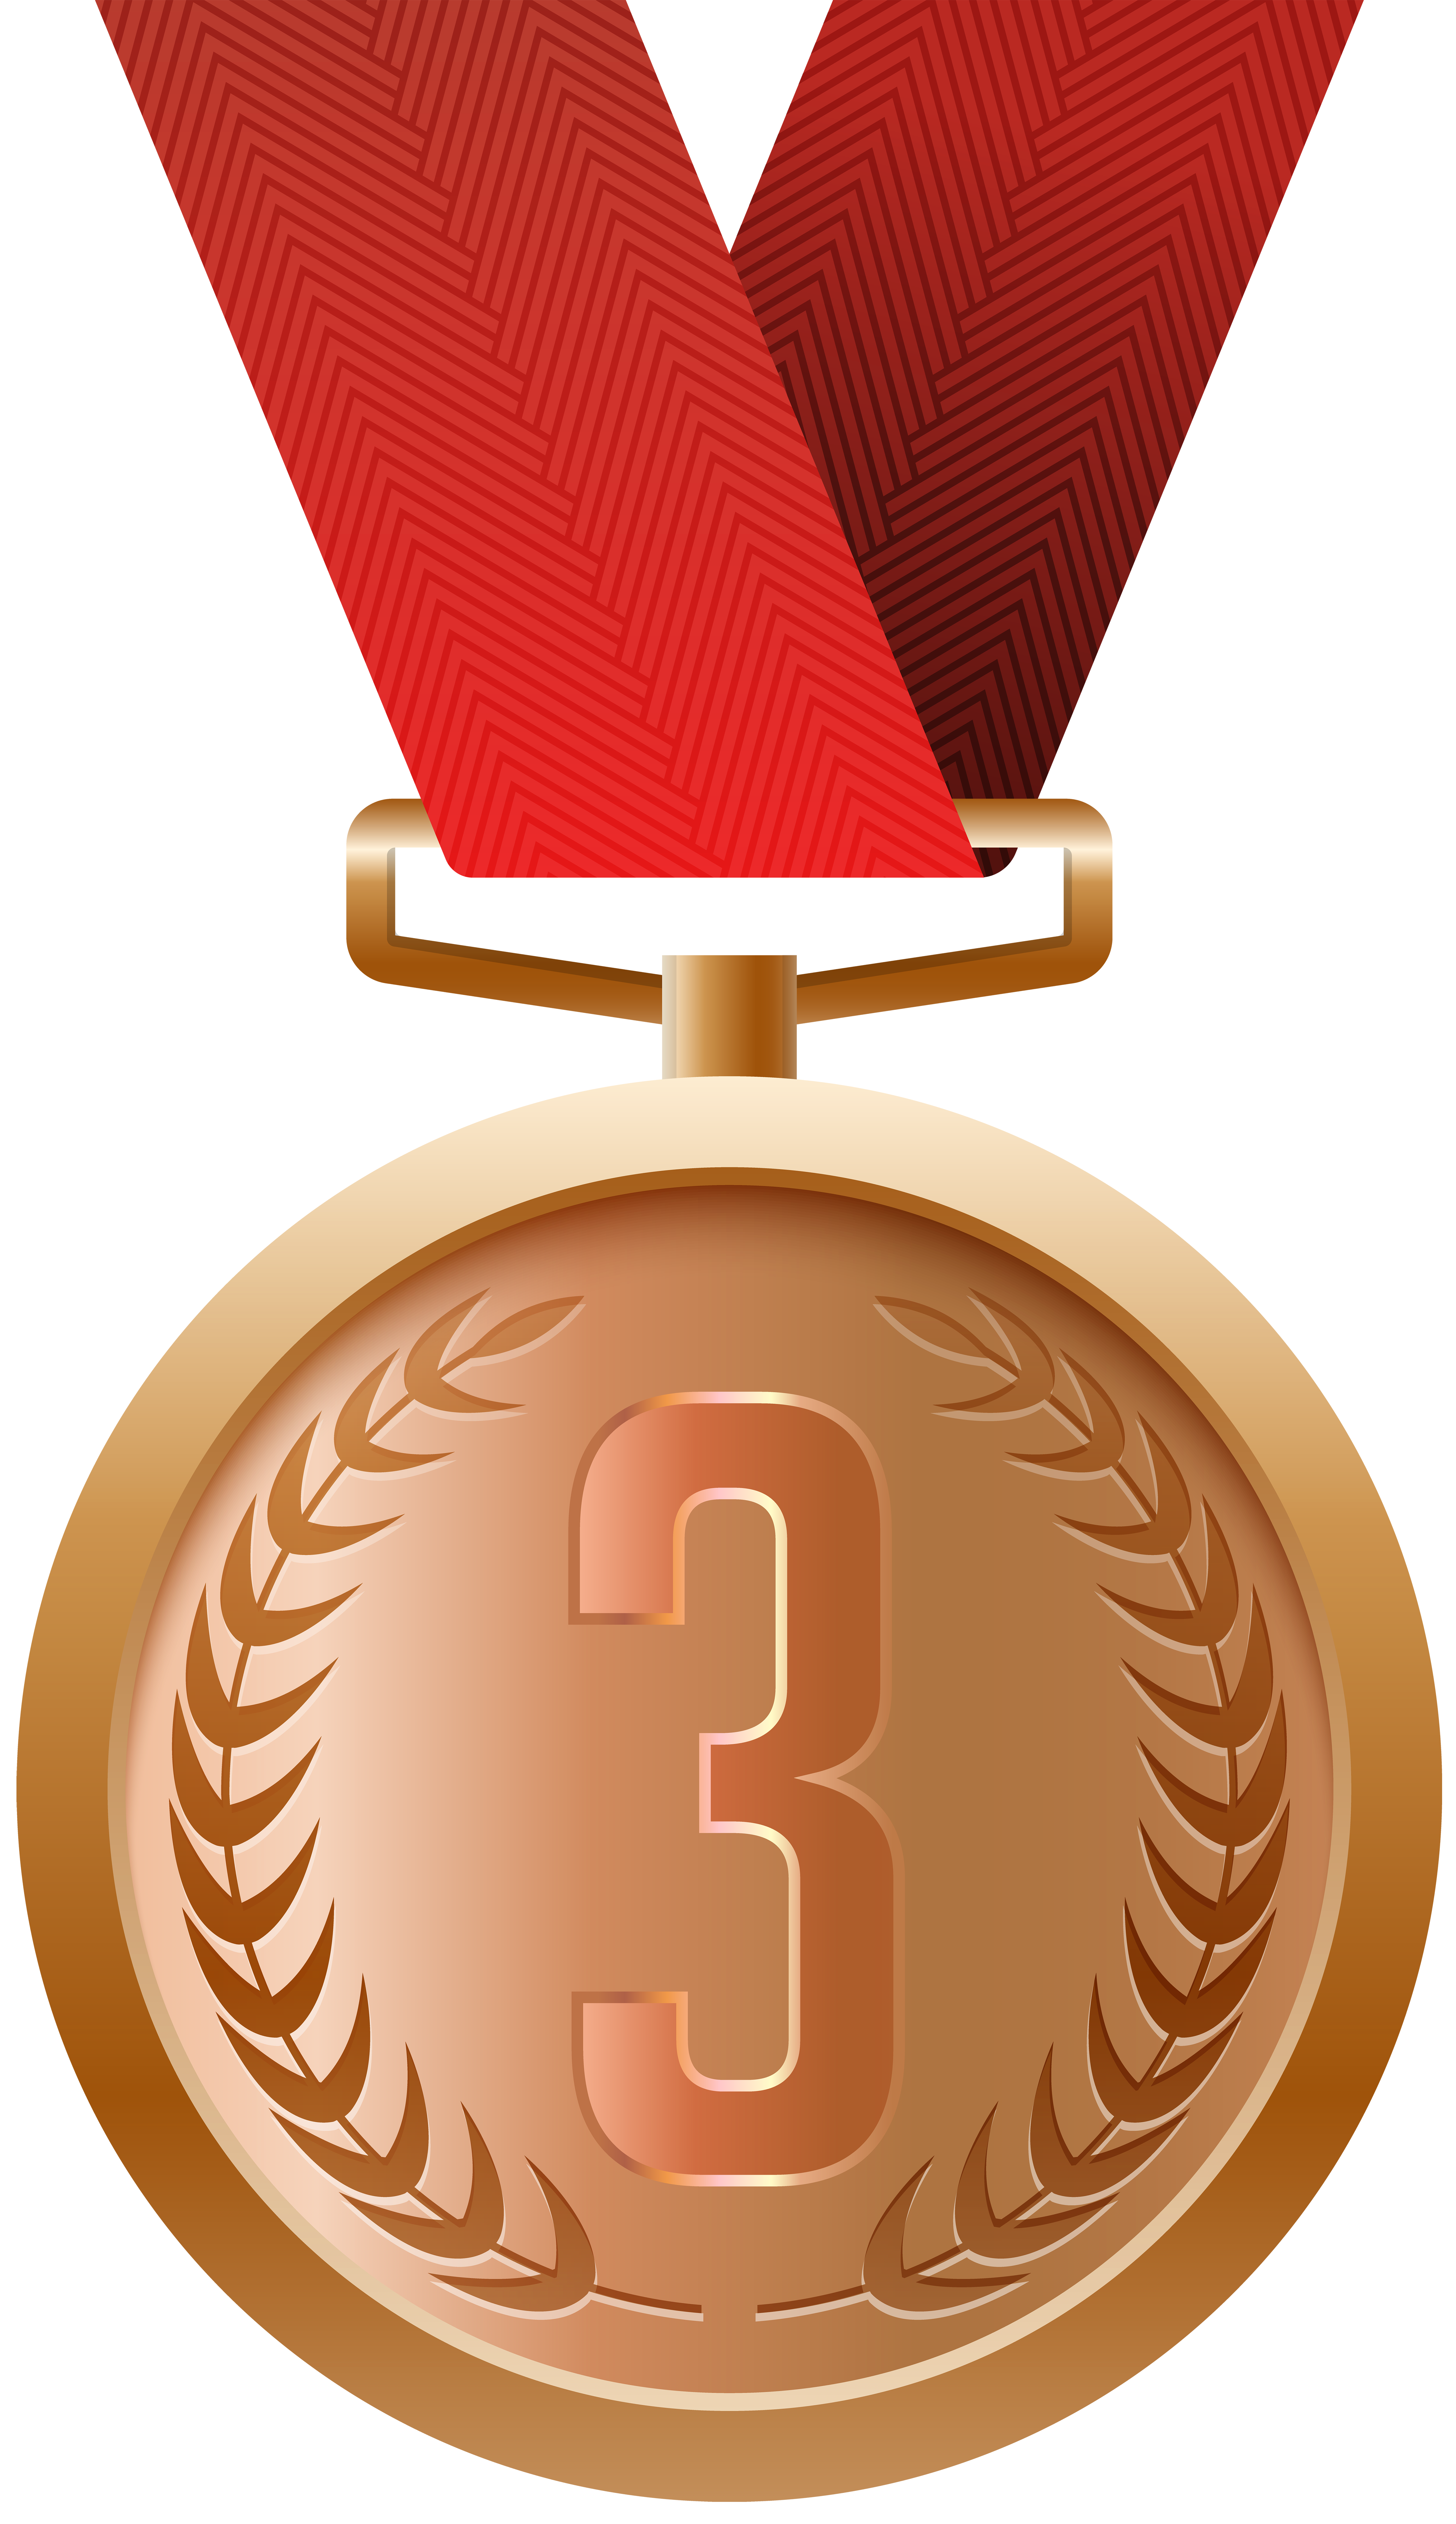 Medal clipart bronze. Png clip art gallery